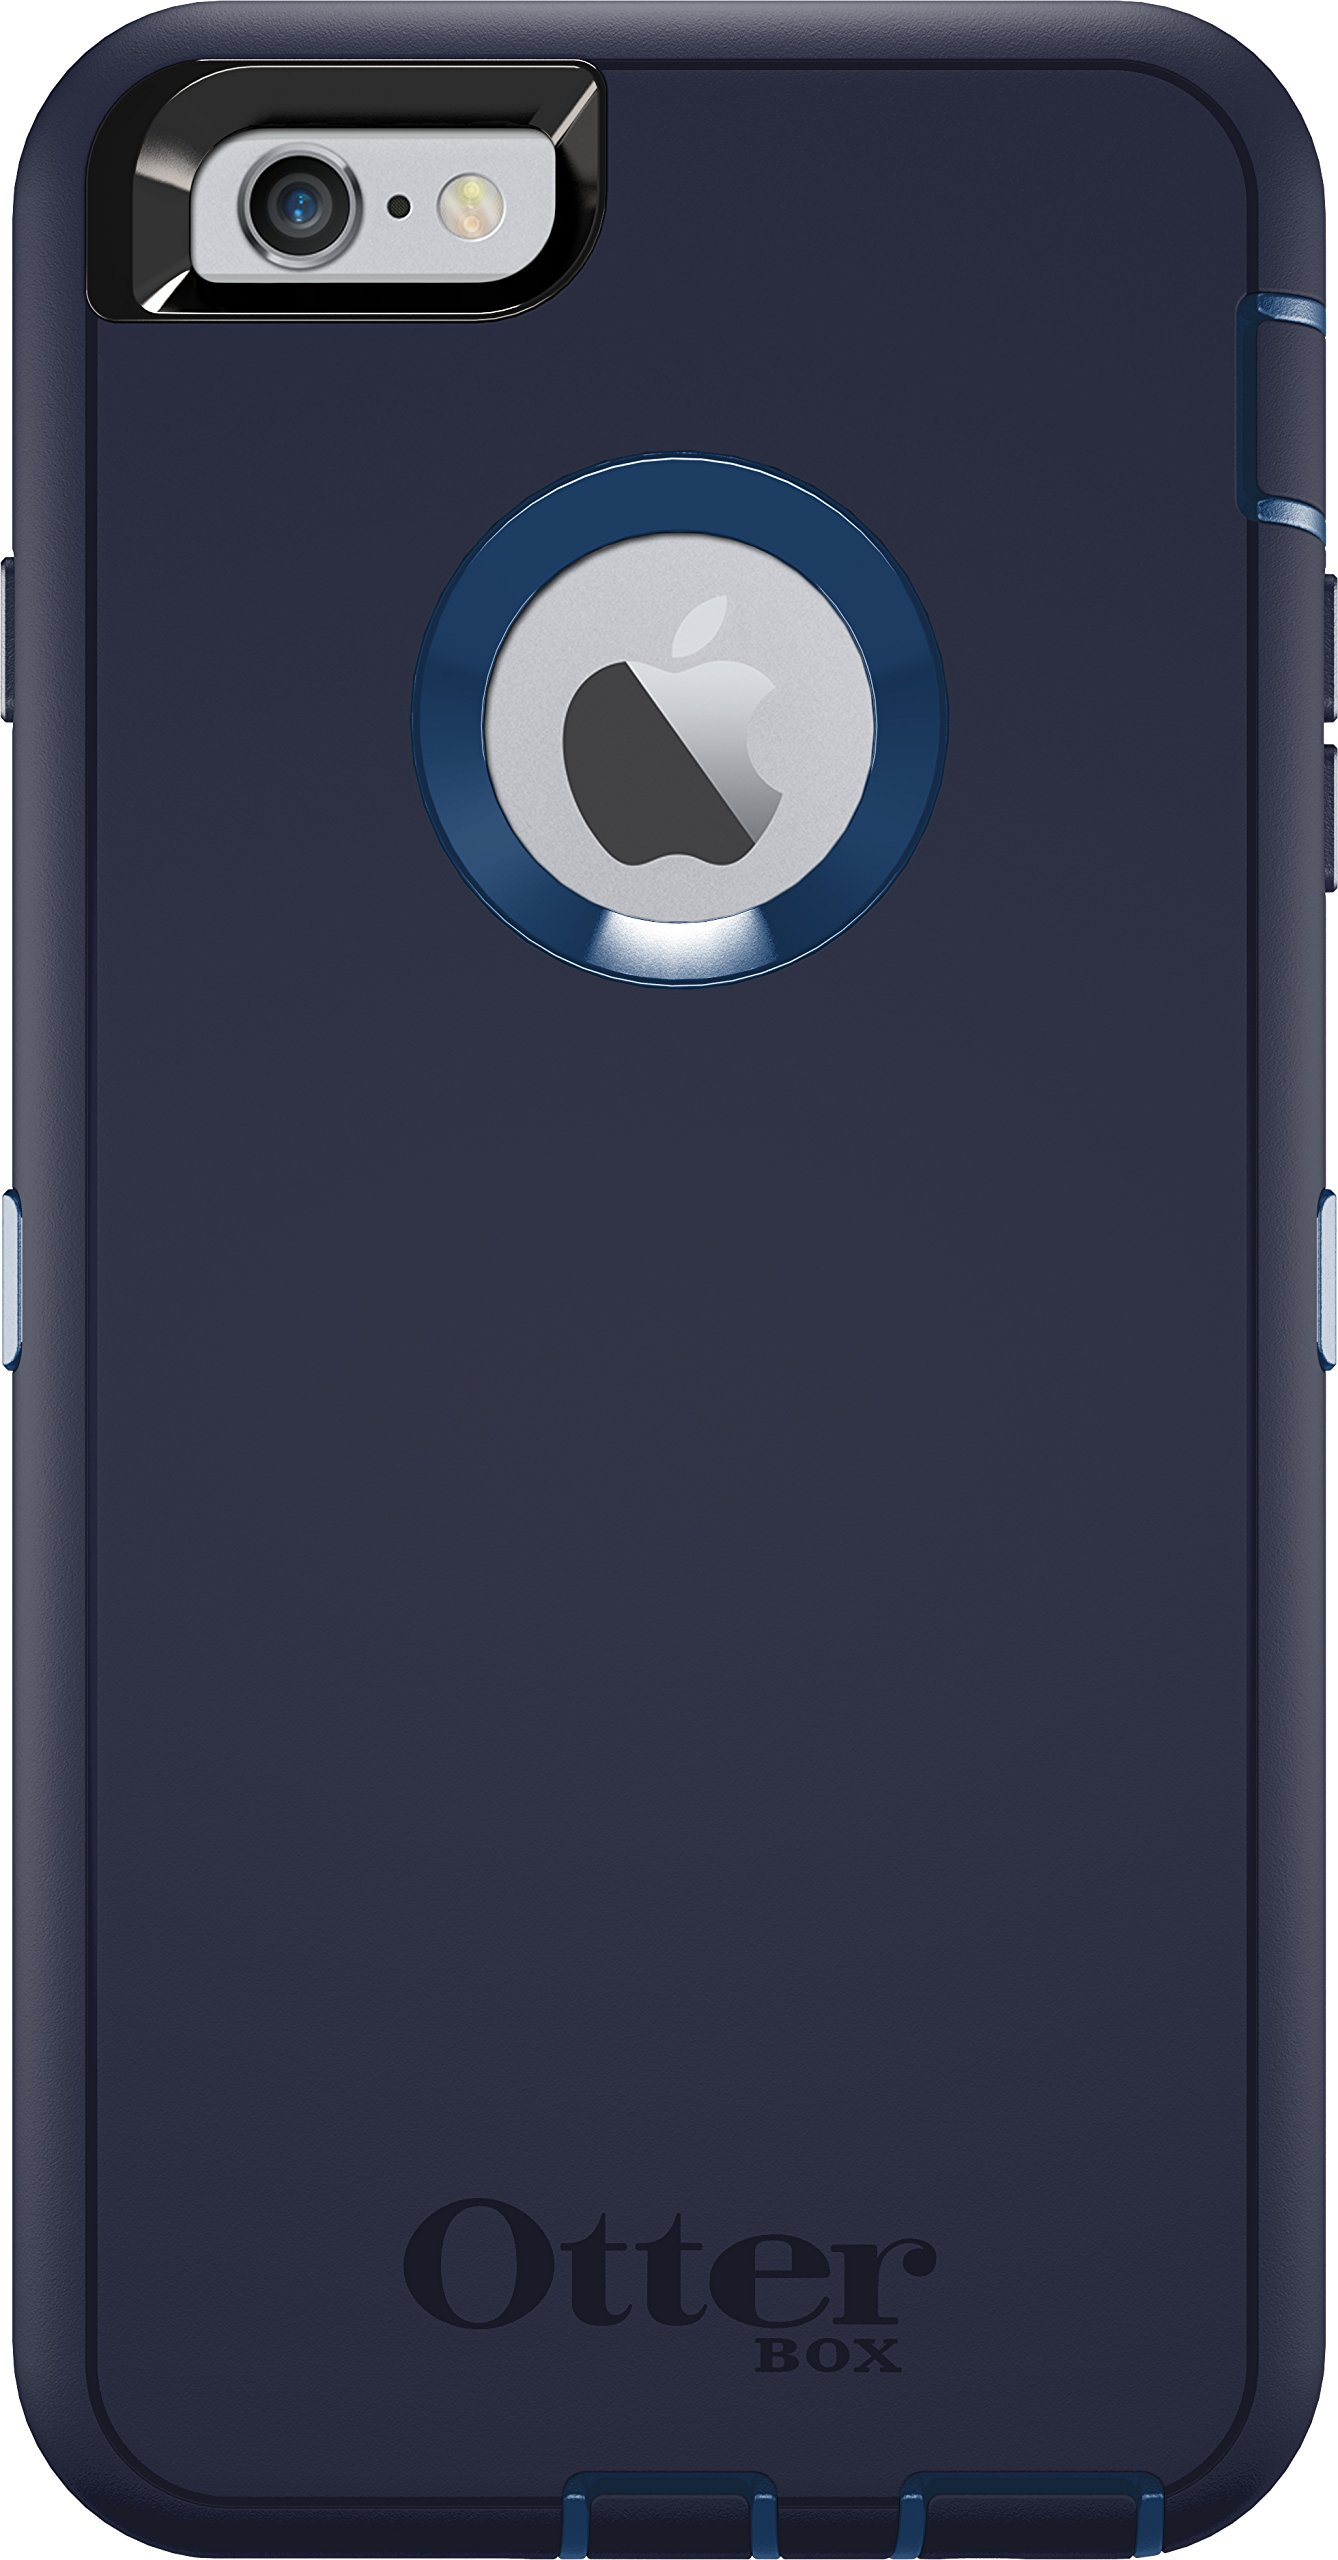 OtterBox DEFENDER iPhone 6 Plus/6s Plus Case - Frustration Free Packaging - INDIGO HARBOR (ROYAL BLUE/ADMIRAL BLUE) by OtterBox